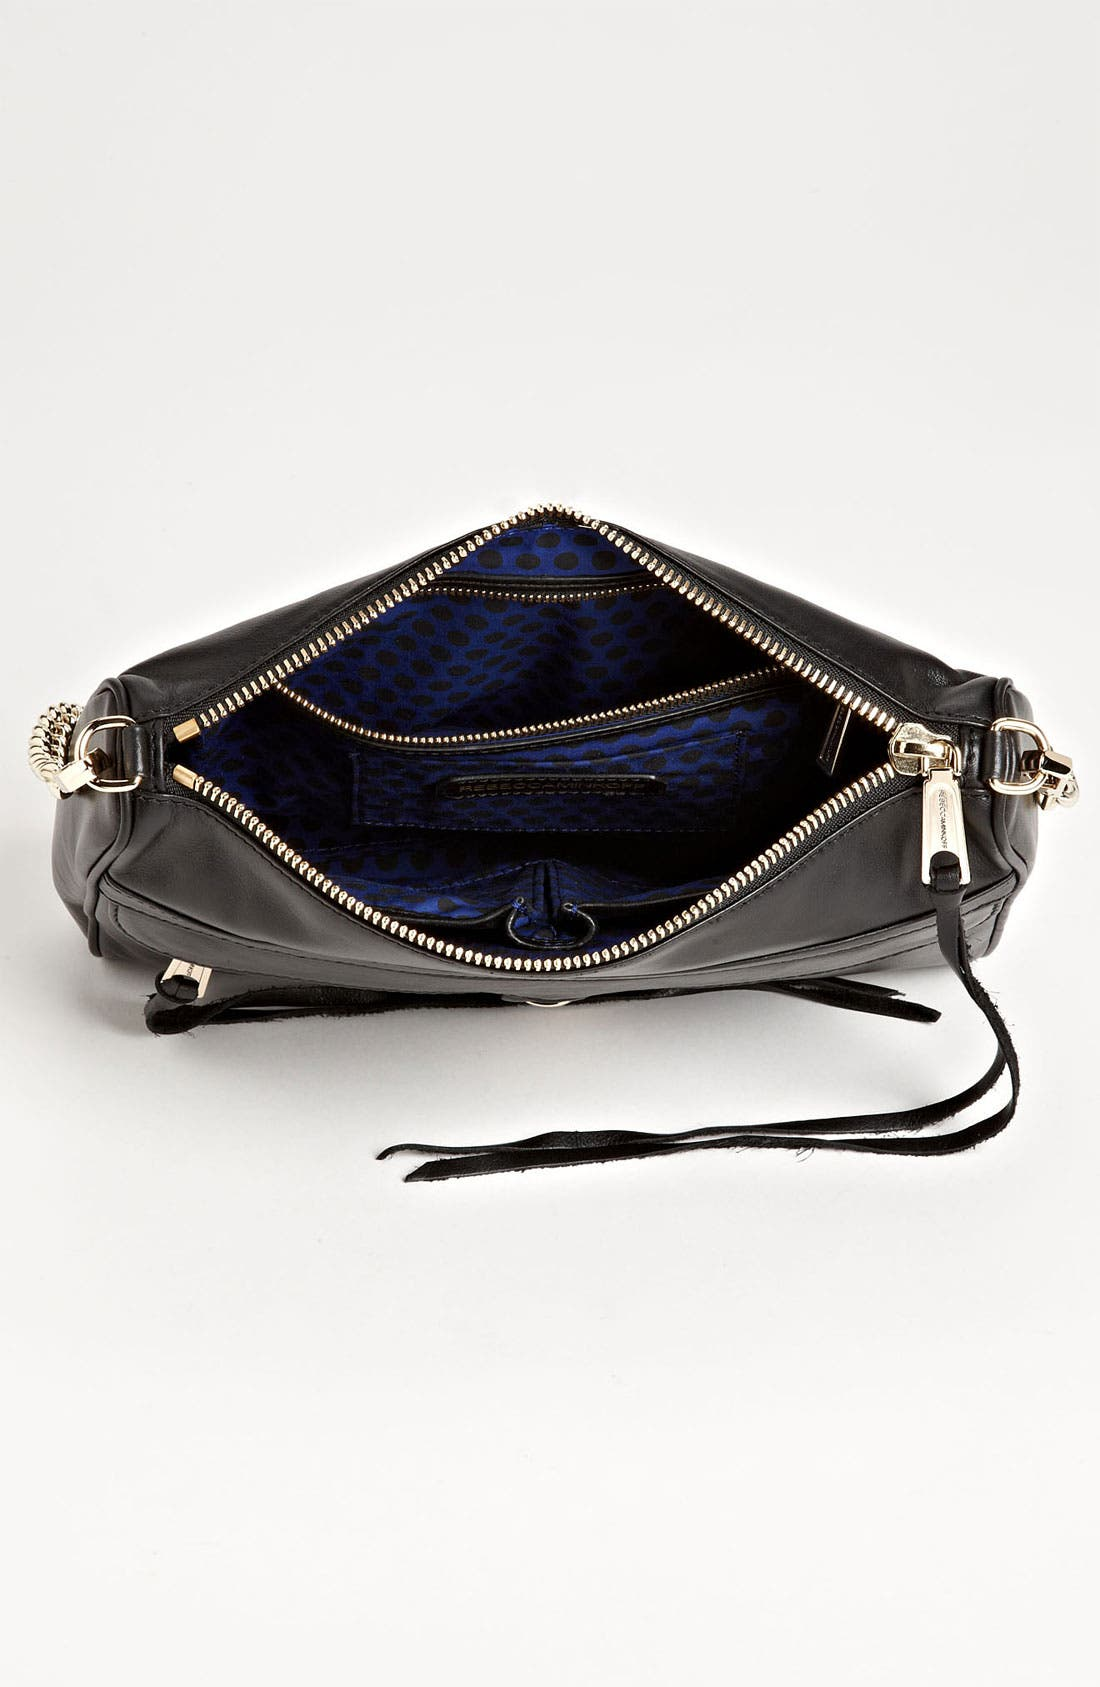 'MAC' Convertible Crossbody Bag,                             Alternate thumbnail 2, color,                             001